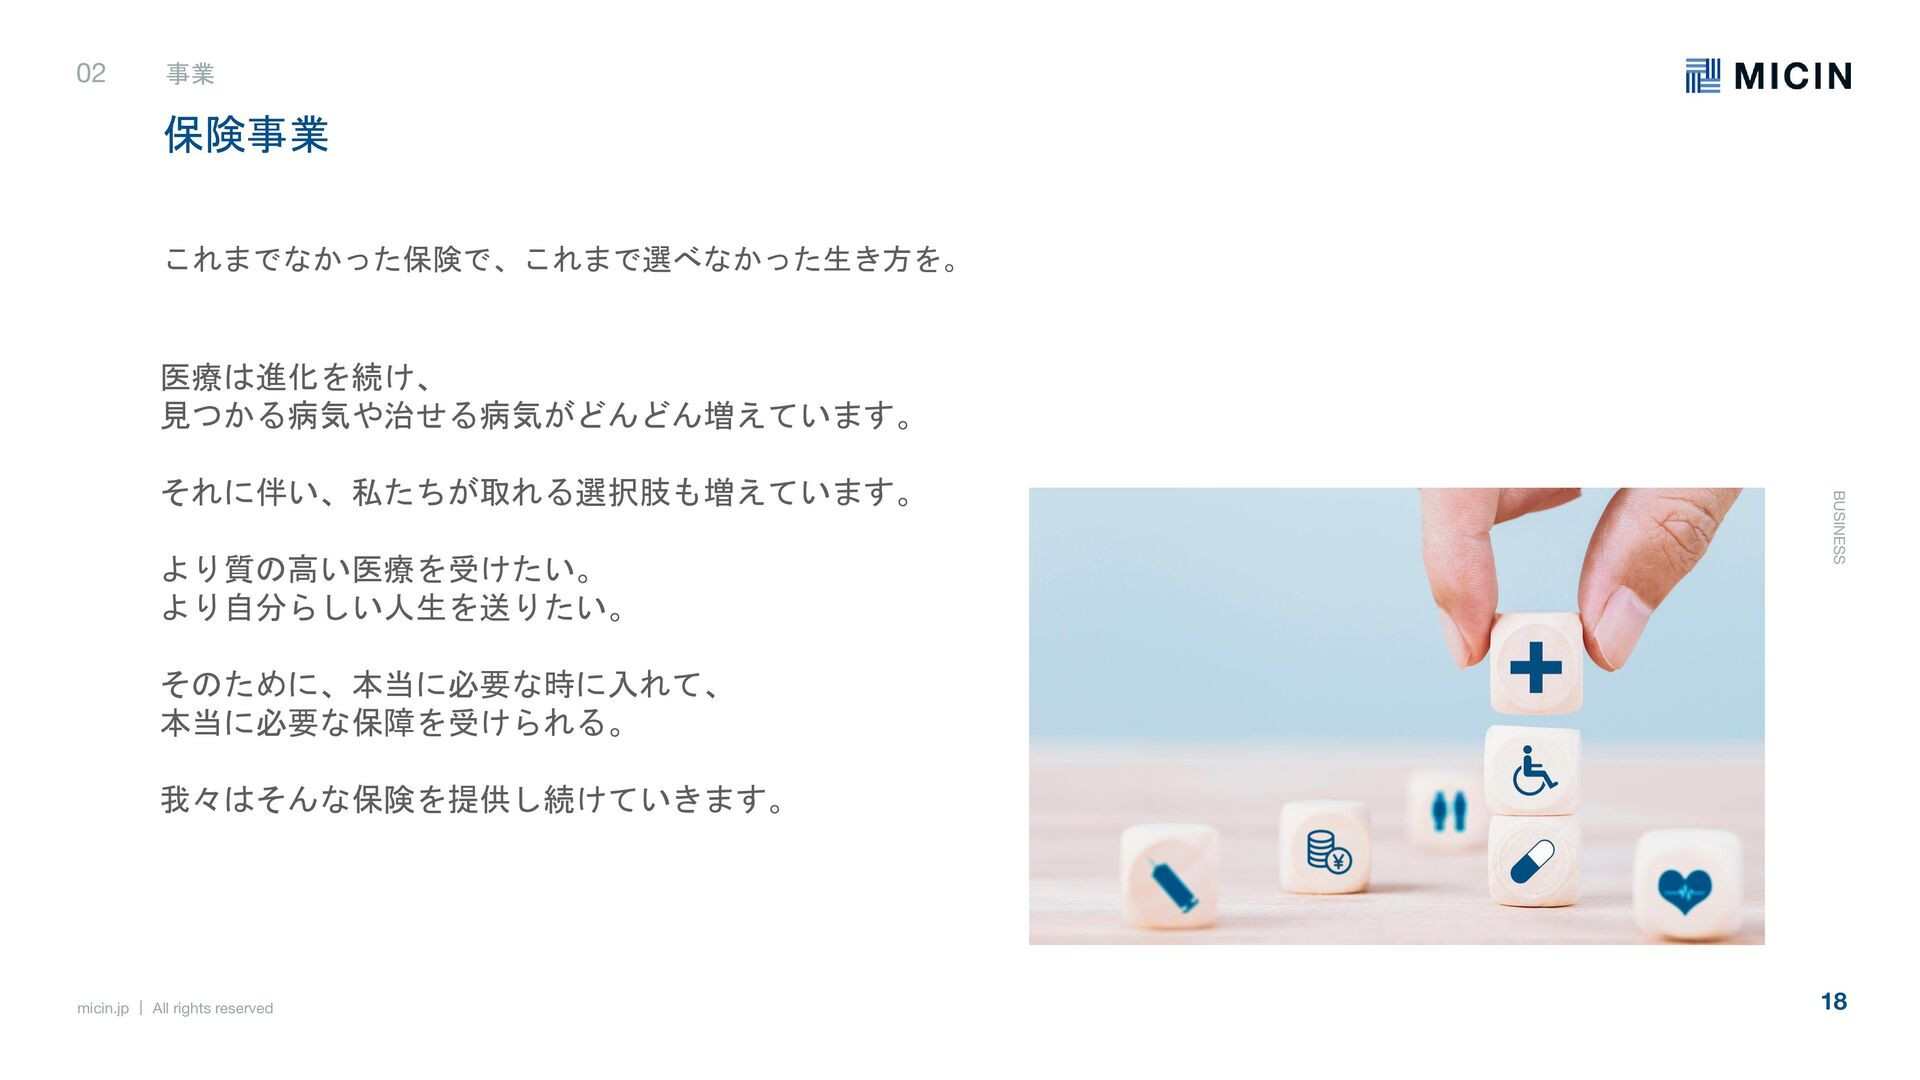 micin.jp   All rights reserved 18 事業 BUSINESS 事...